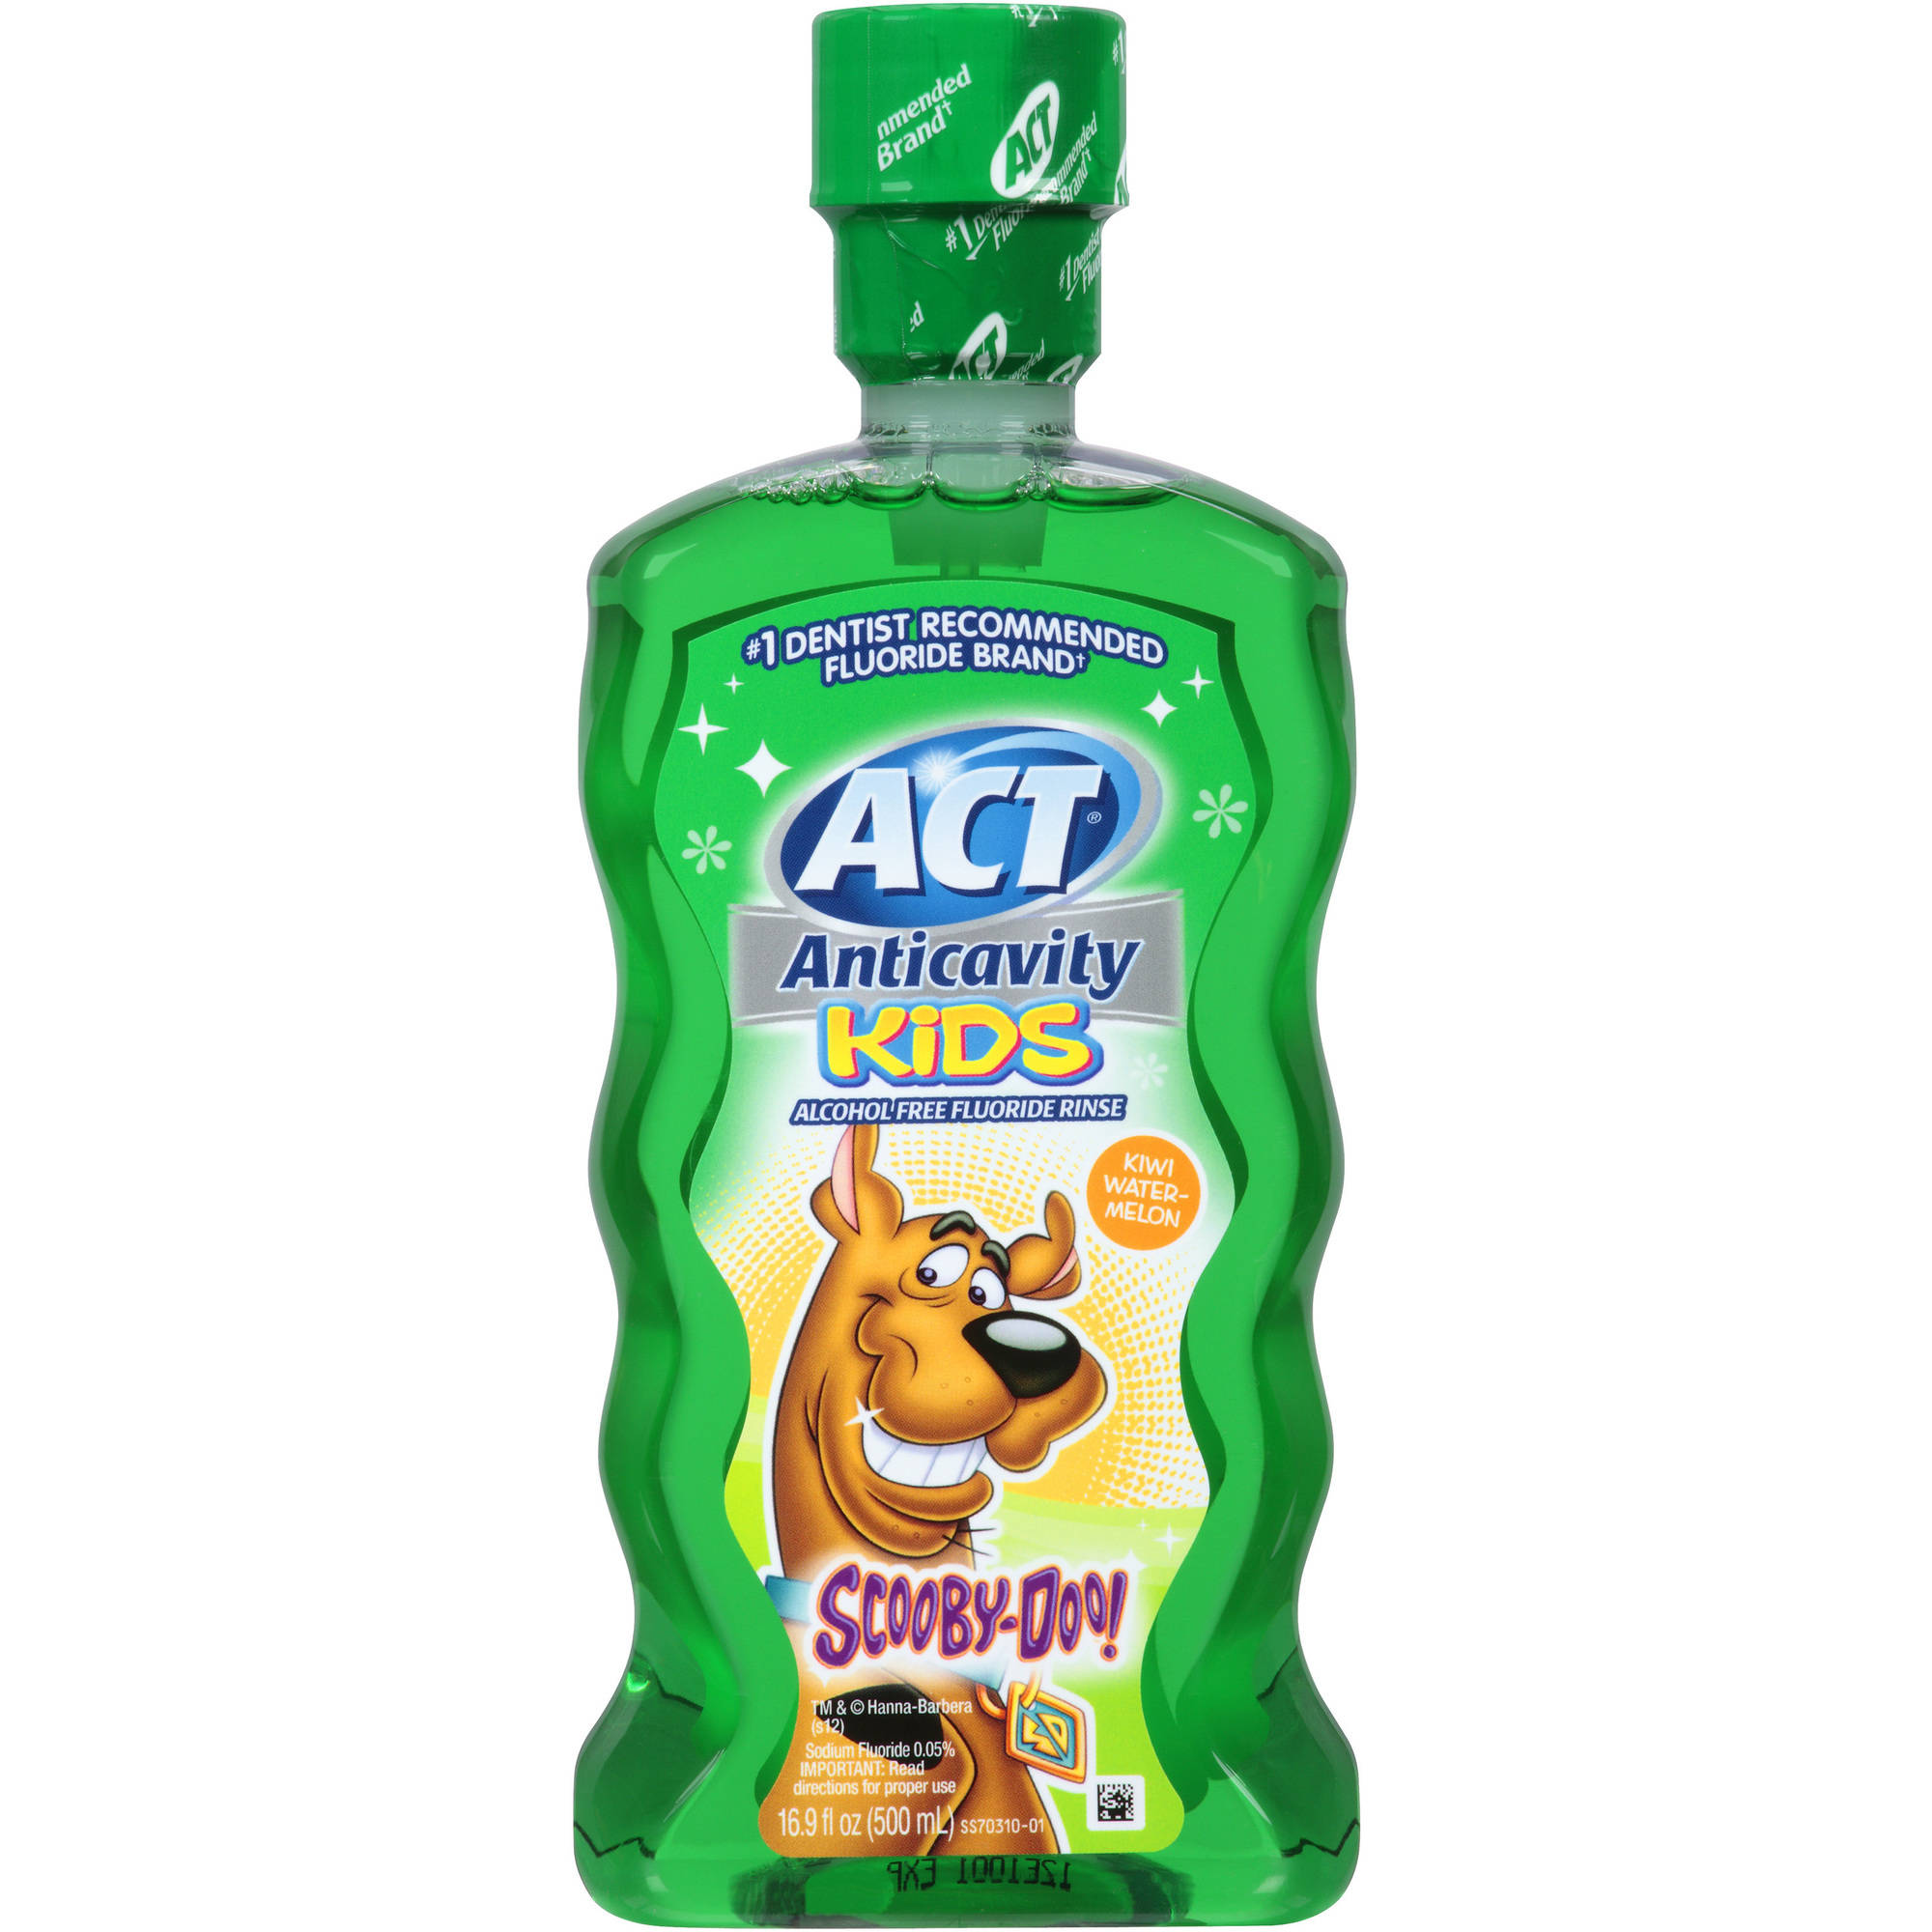 ACT Anticavity Kids Scooby-Doo! Kiwi Watermelon Alcohol Free Fluoride Rinse, 16.9 fl oz